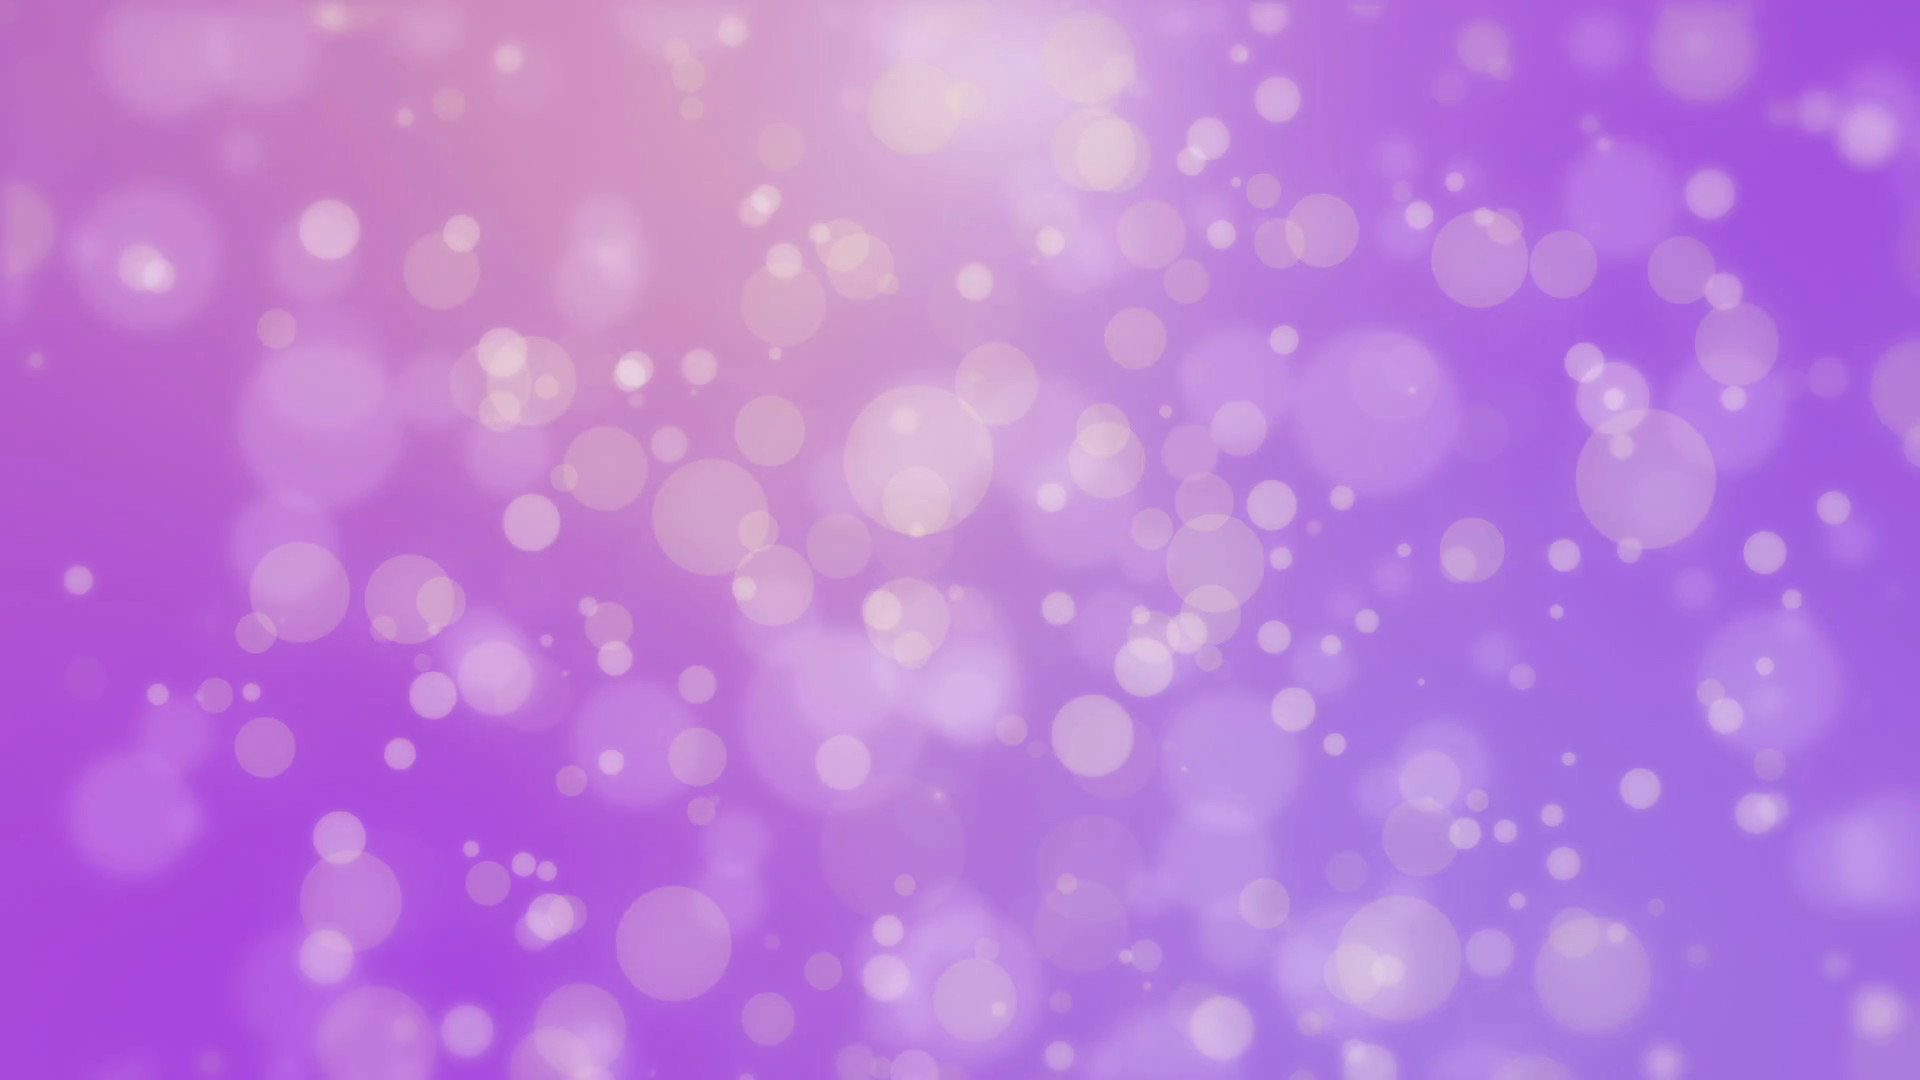 pretty images background